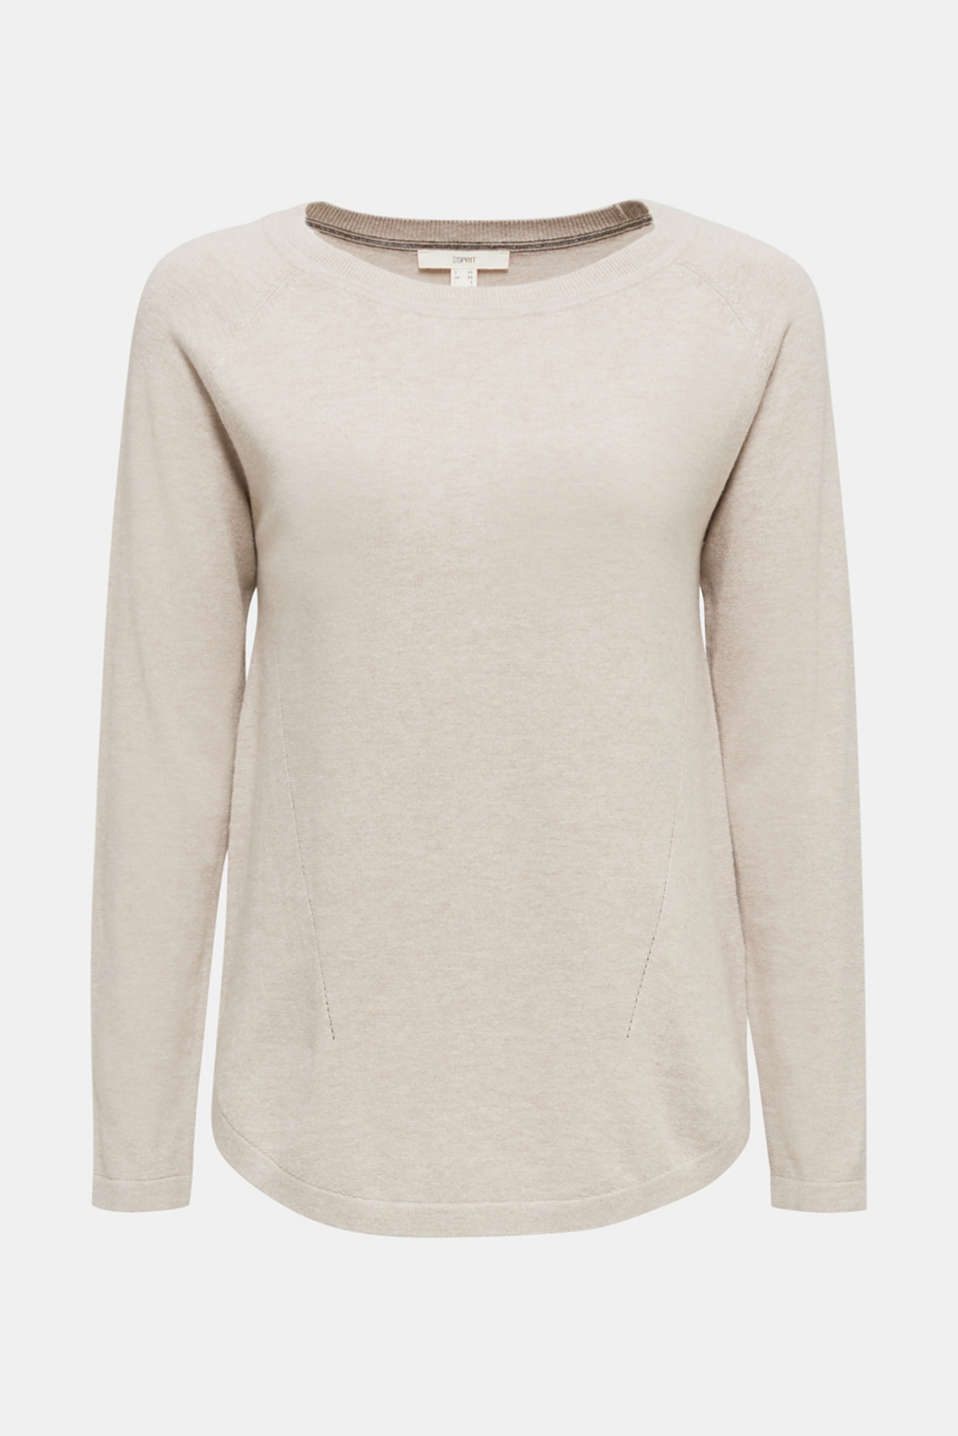 With linen: Jumper with open-work patterned details, BEIGE 5, detail image number 6